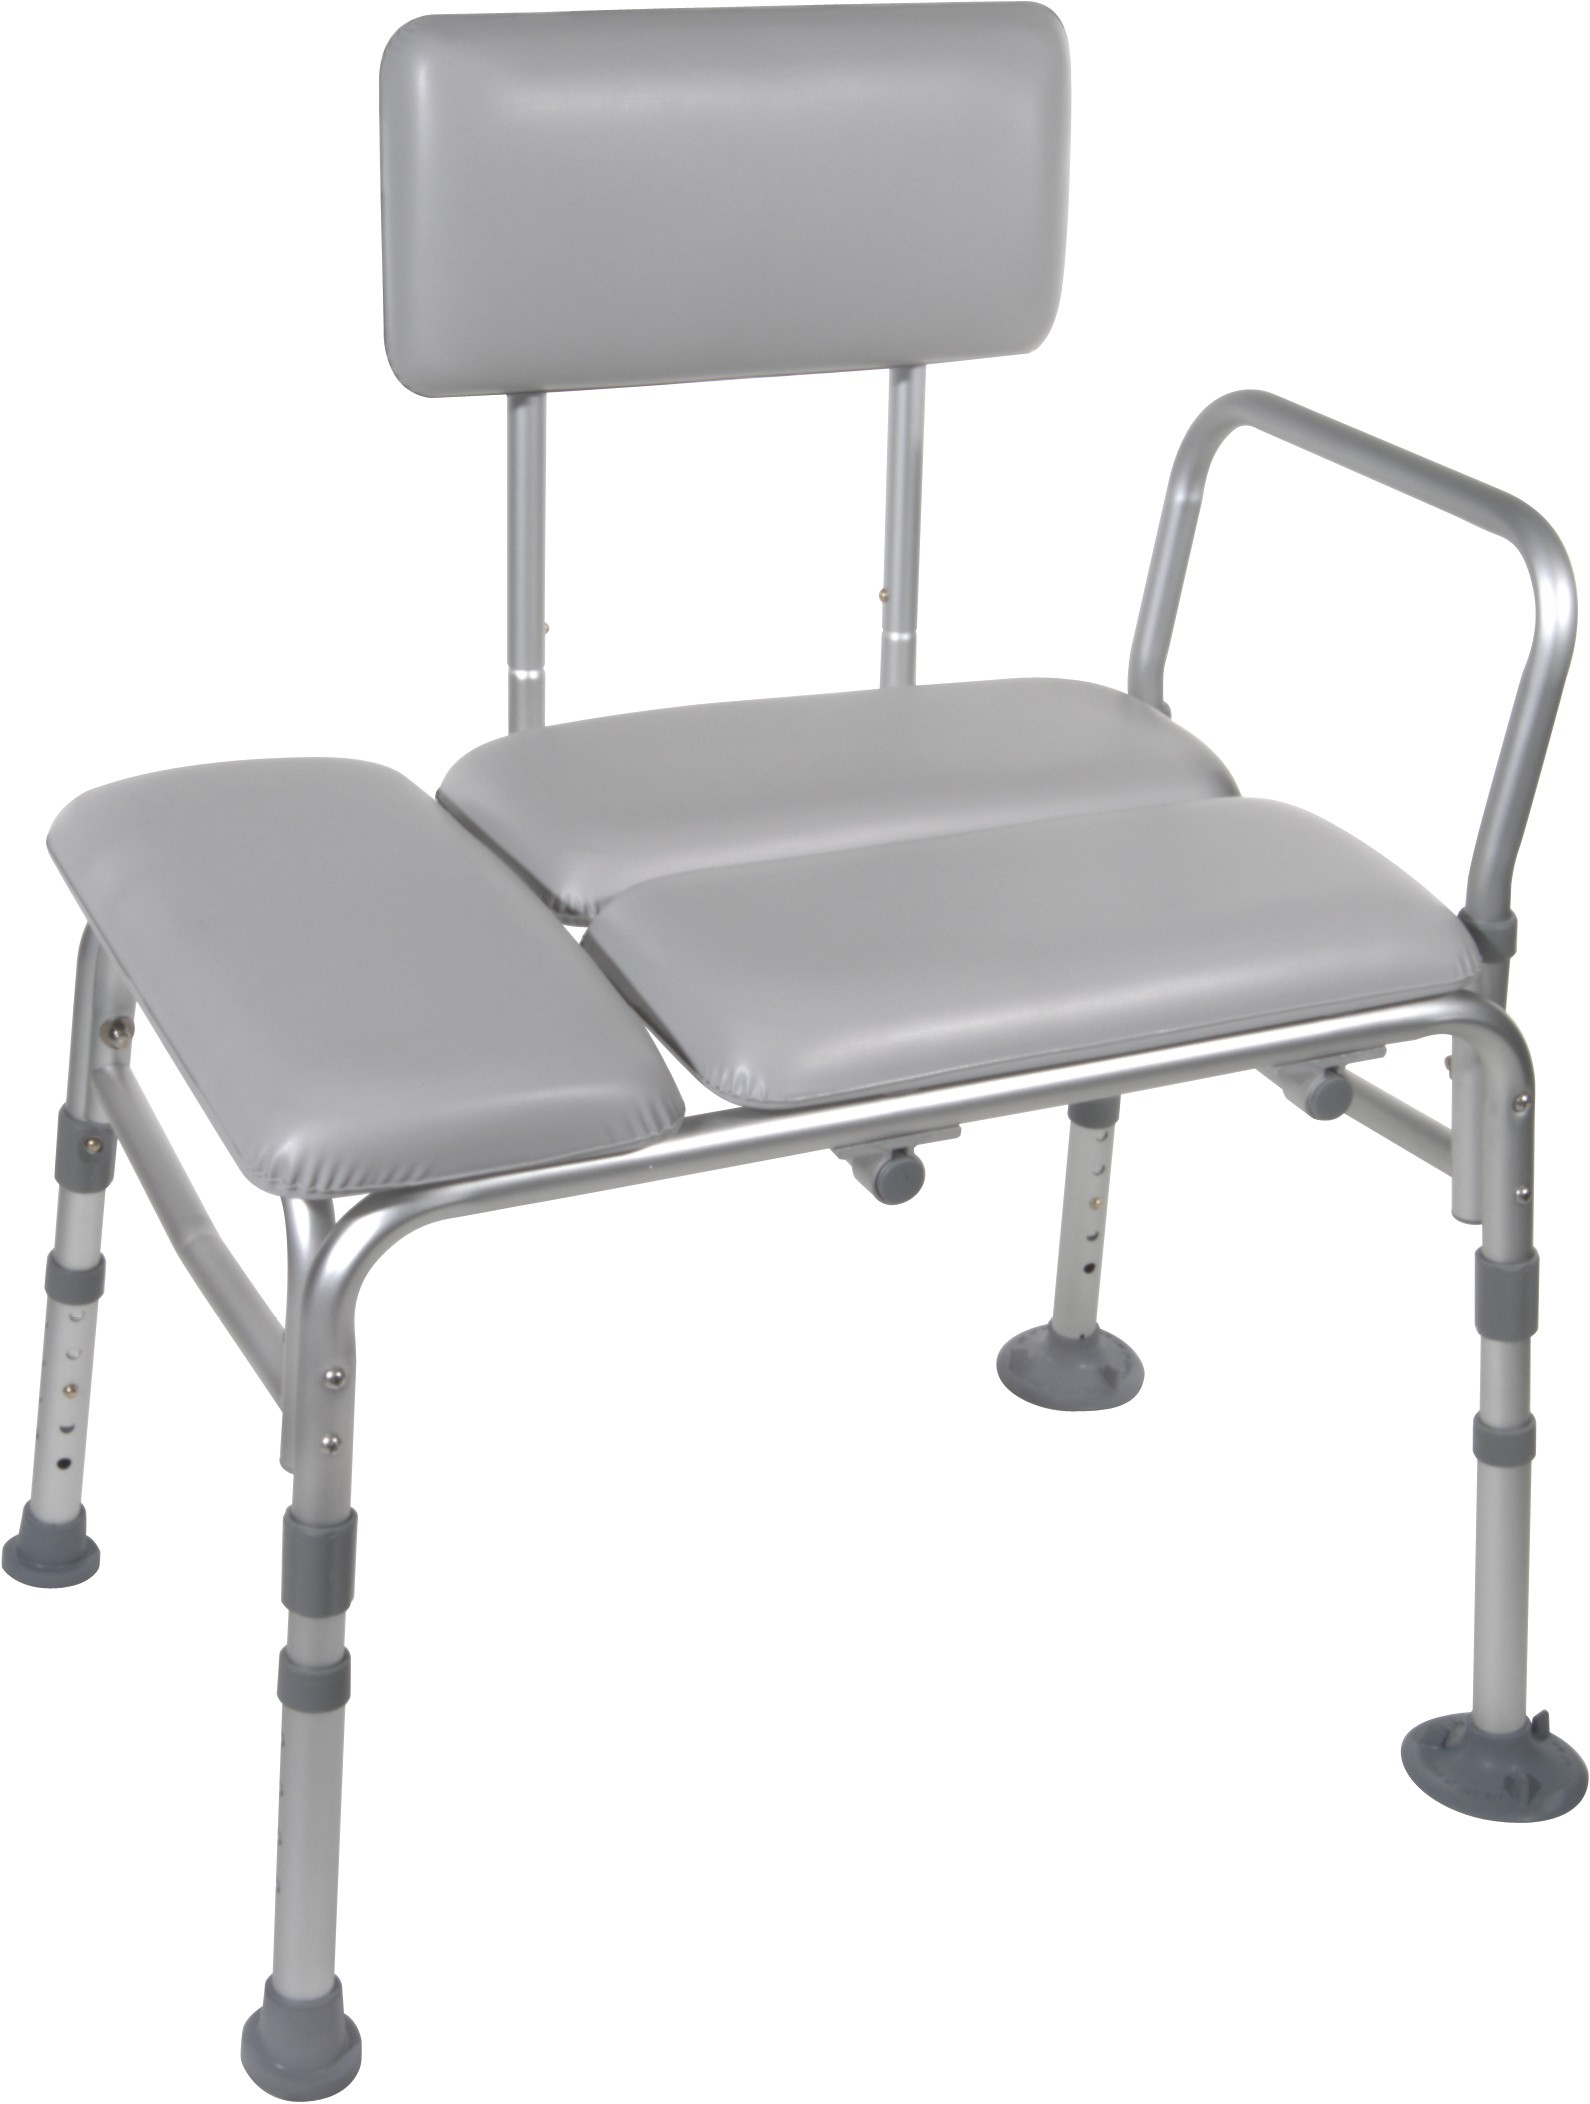 Adjustable Bath Transfer Bench Padded Free Shipping